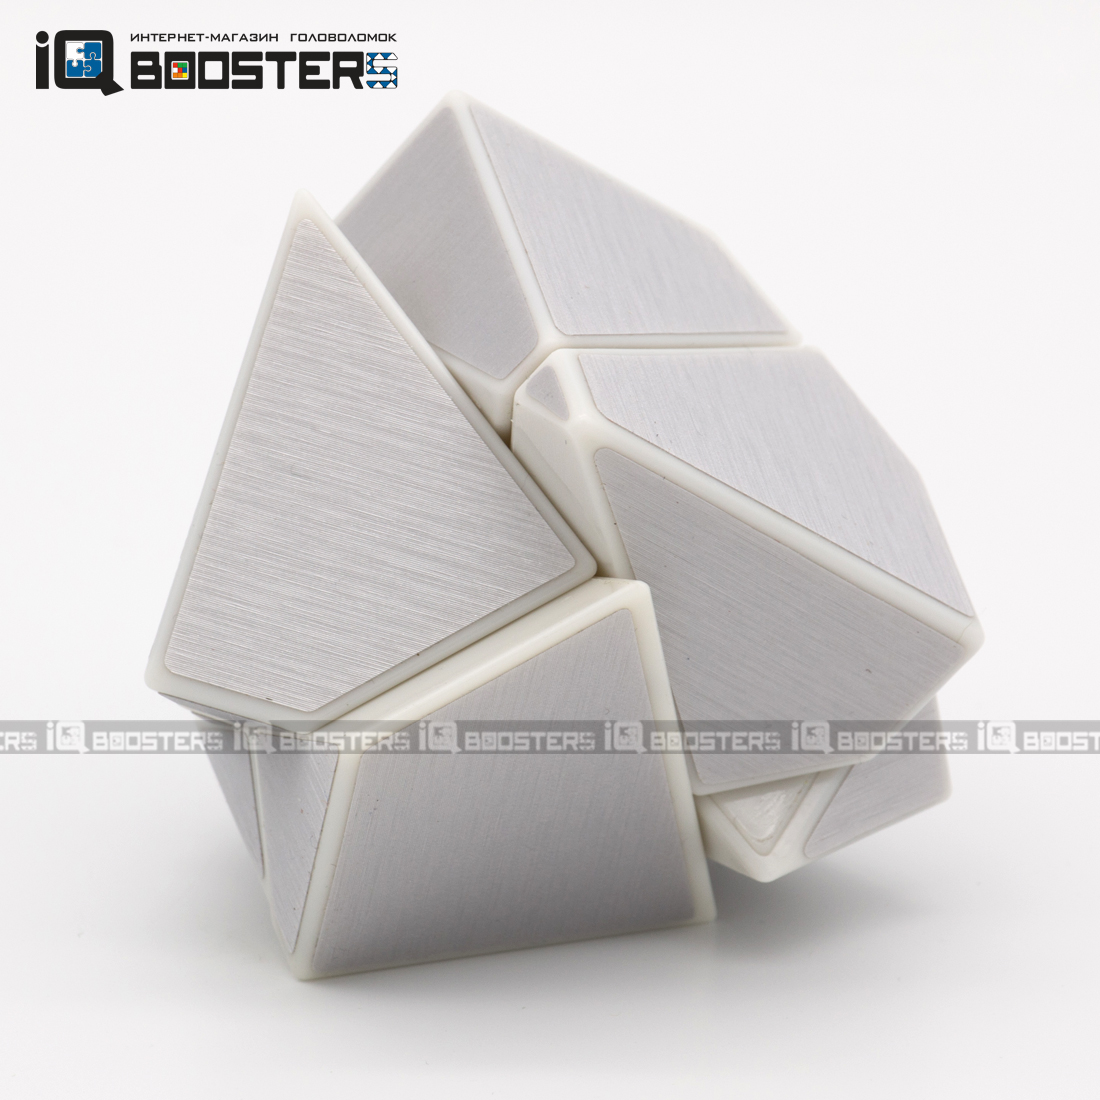 limcube_ghost_2x2_3s